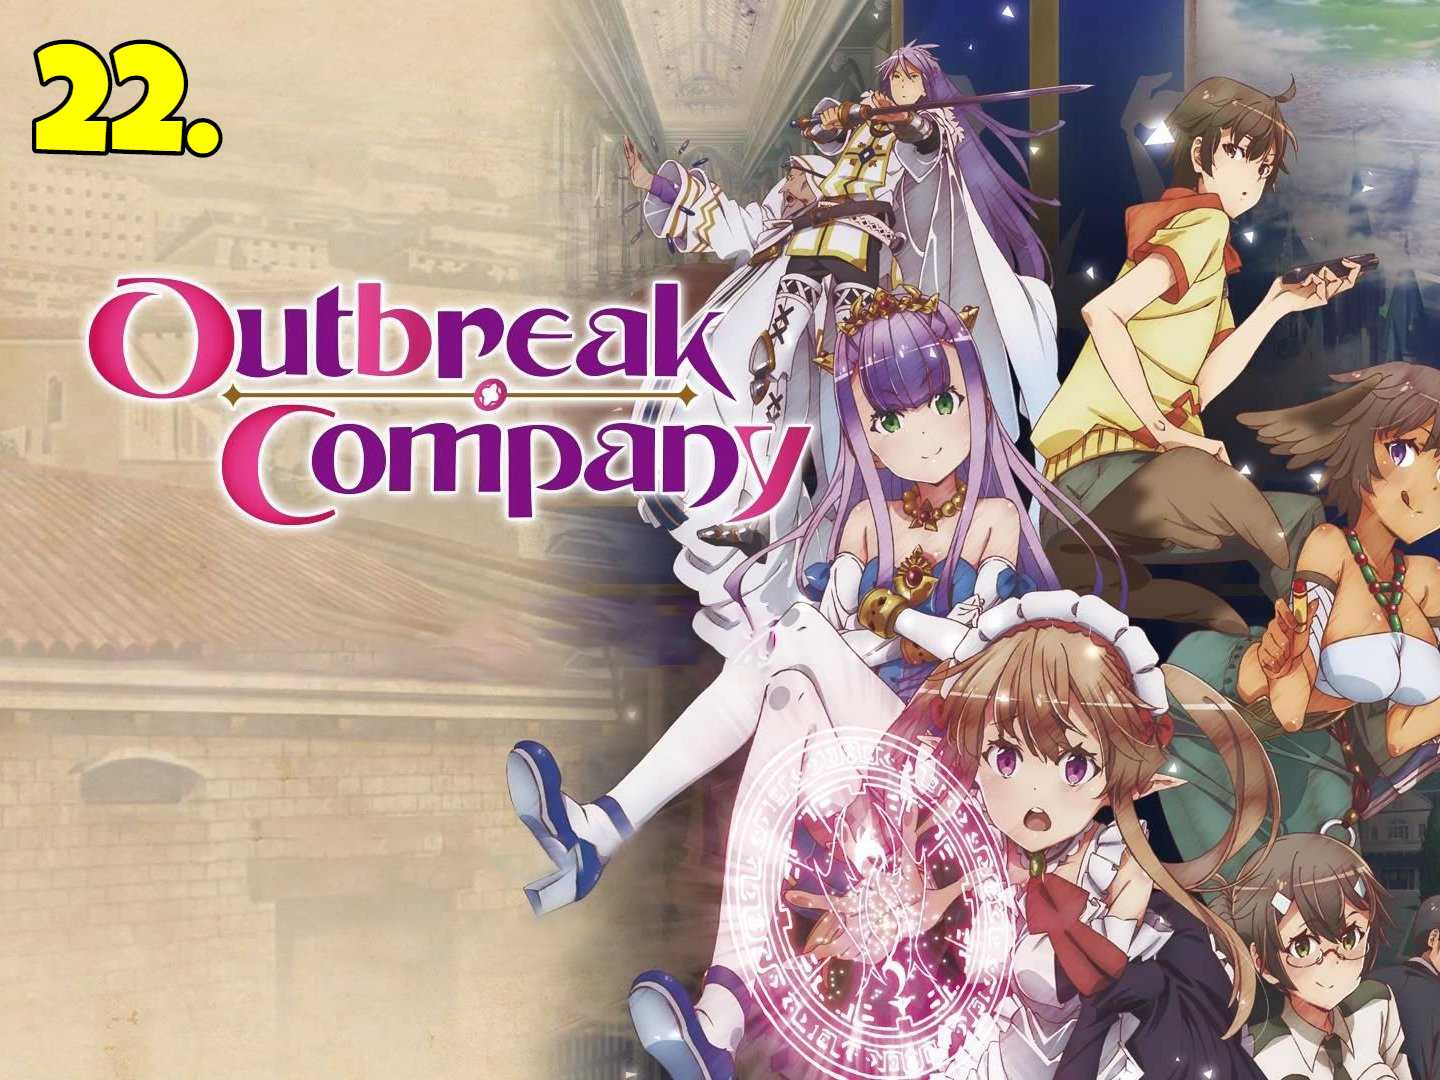 Outbreak-Company